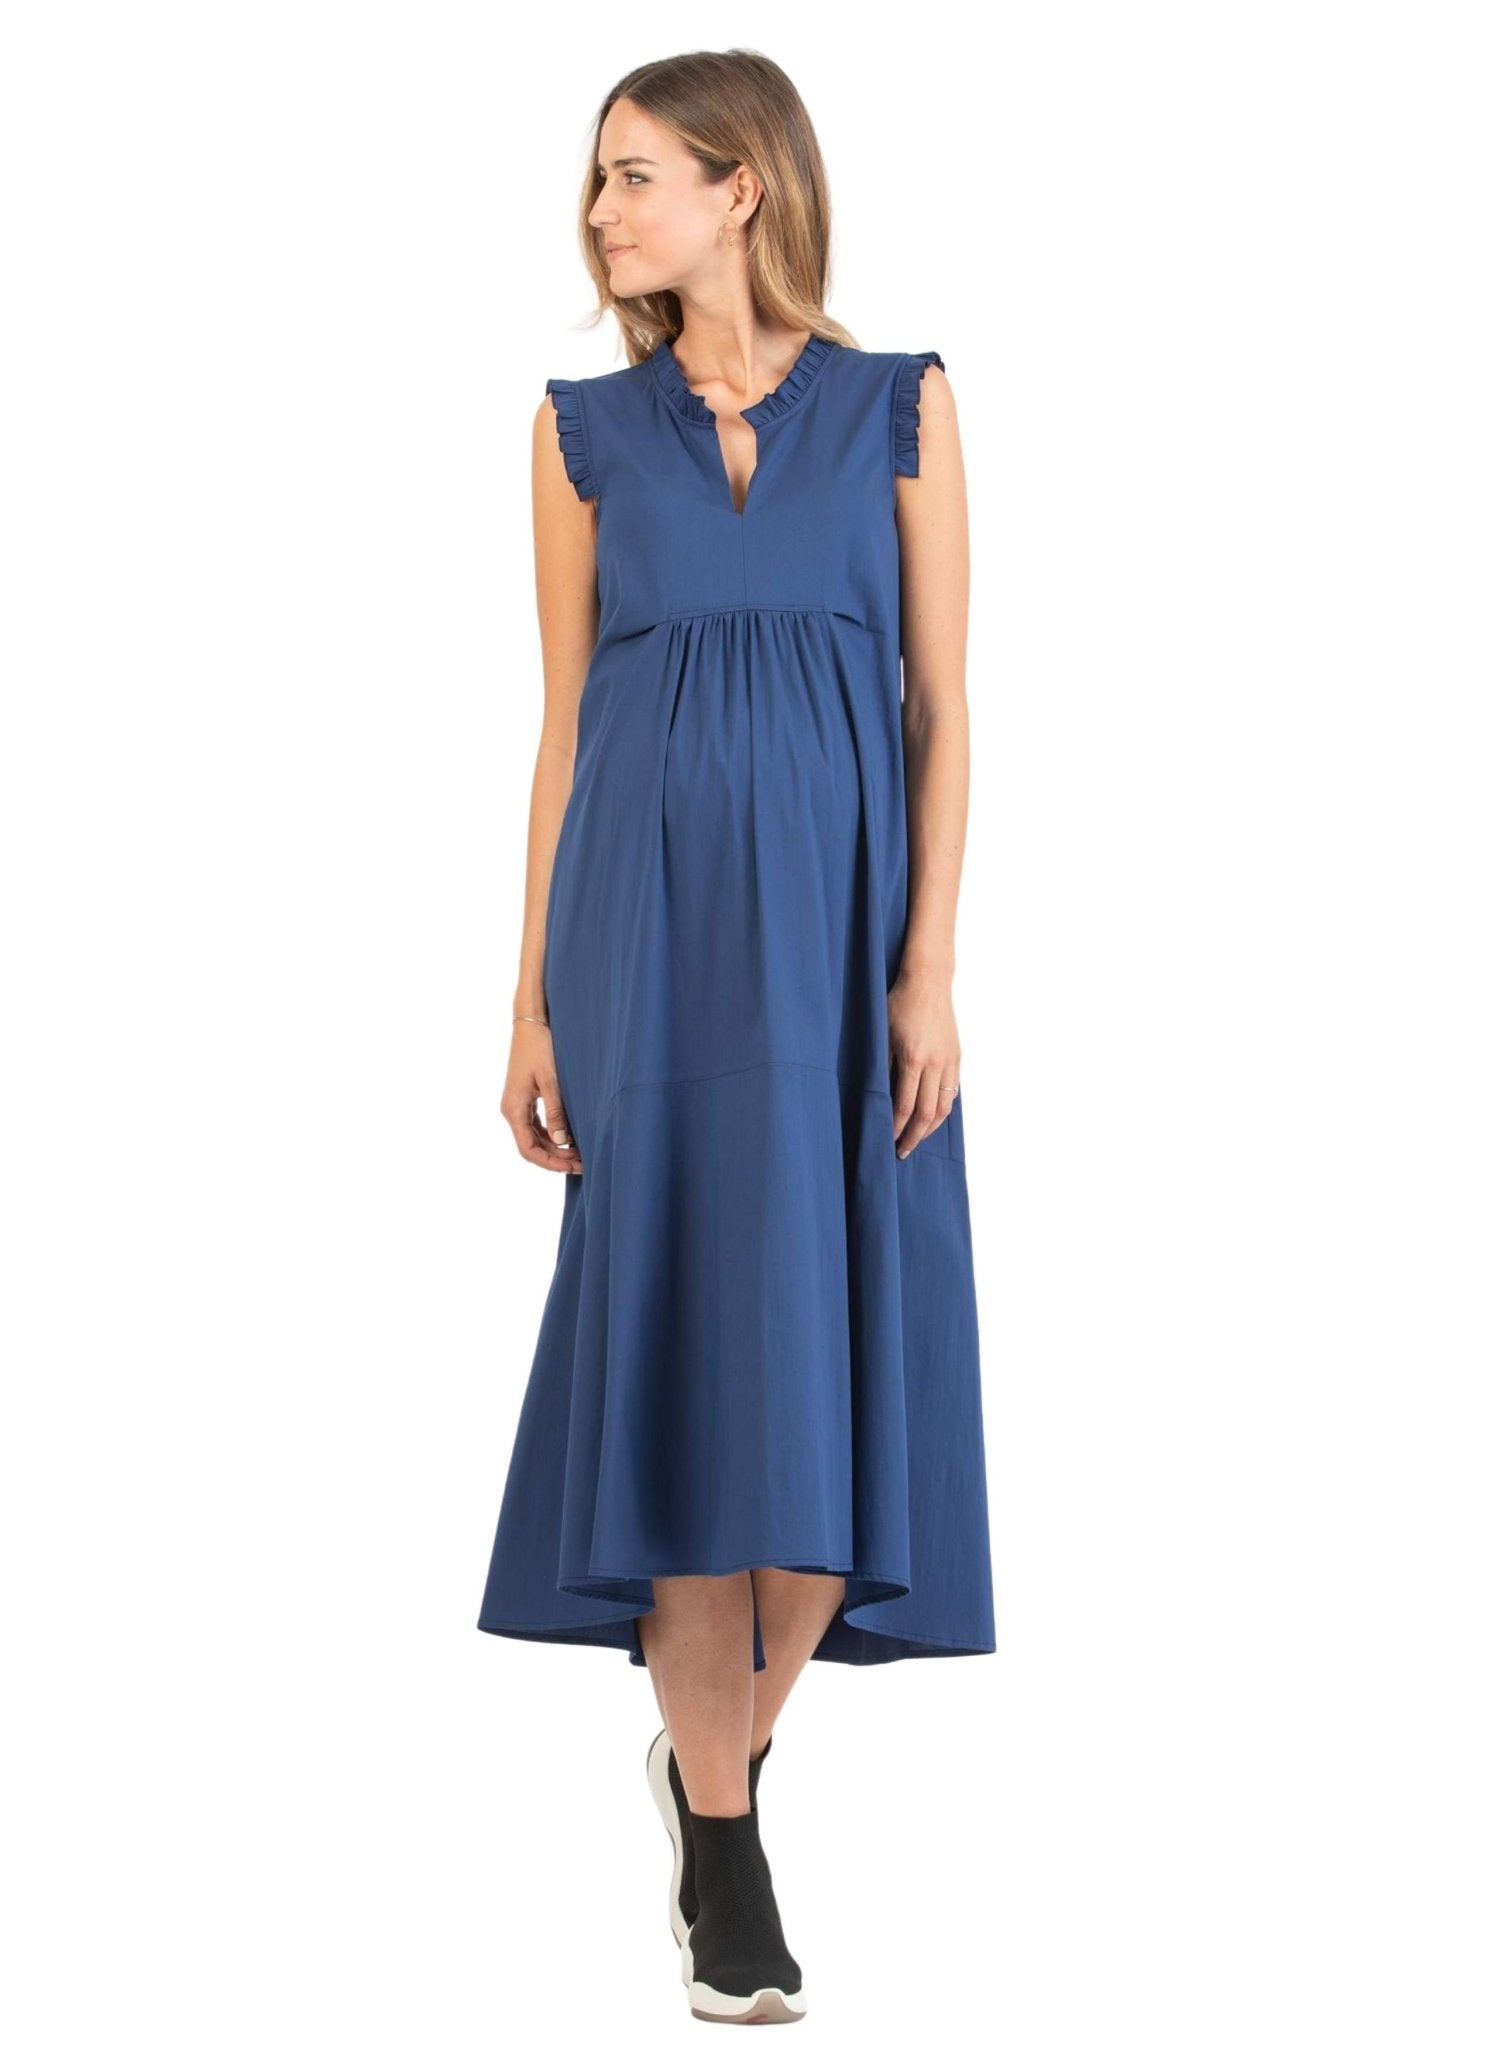 Maternity Midi Dress with Frill Trims - Blue - Mums and Bumps